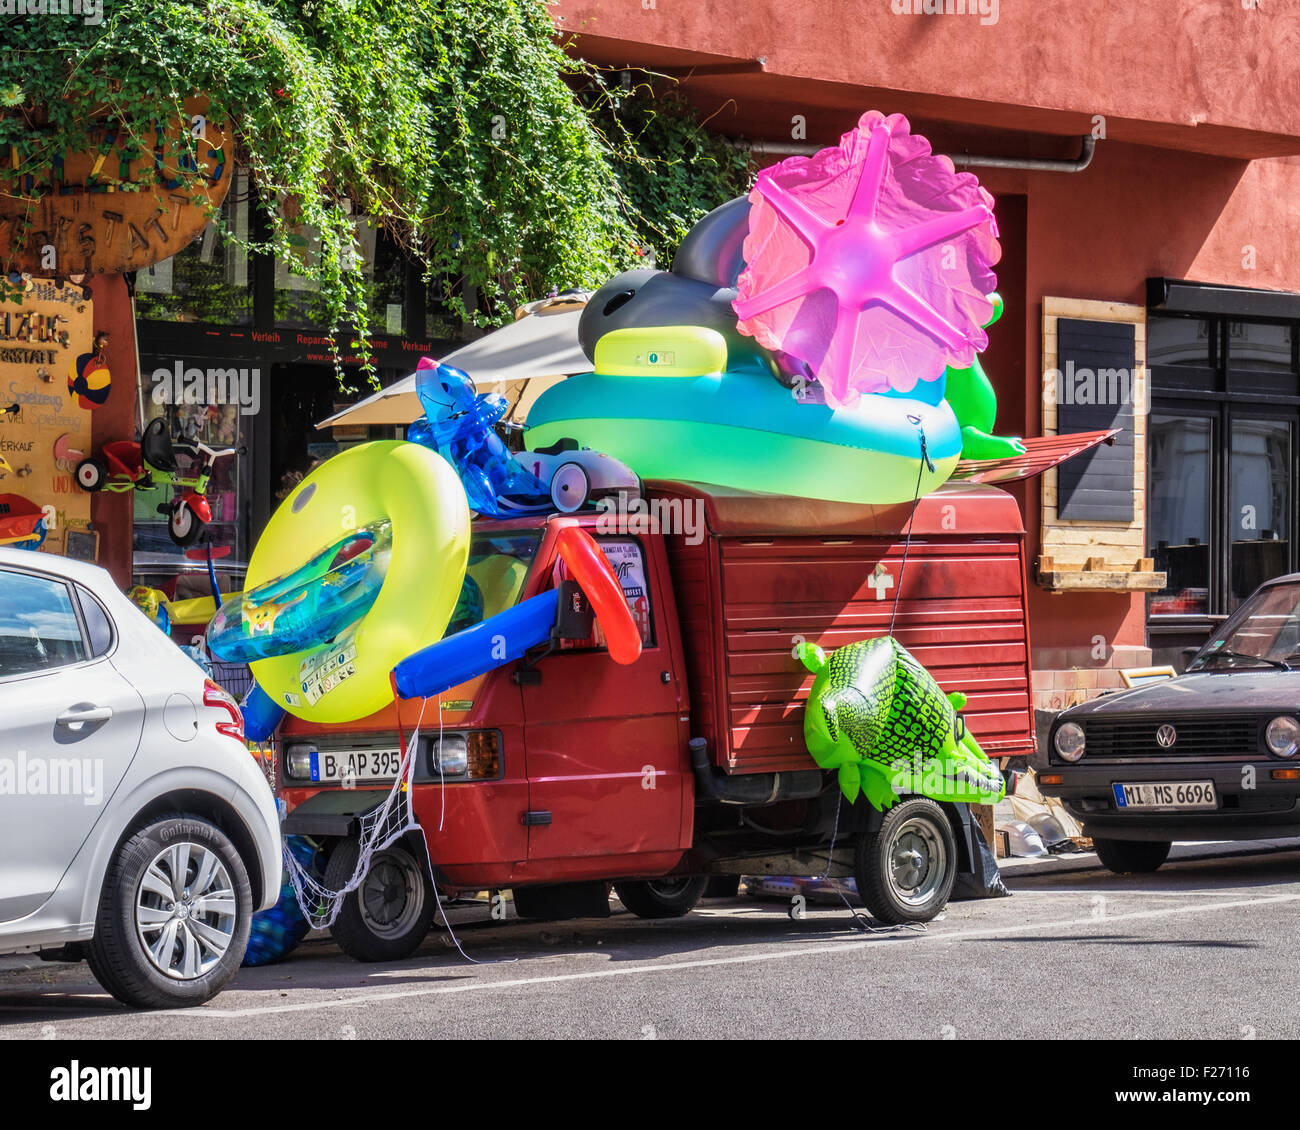 Three wheeled van covered in blow-up children's paddling pools and toys - Stock Image